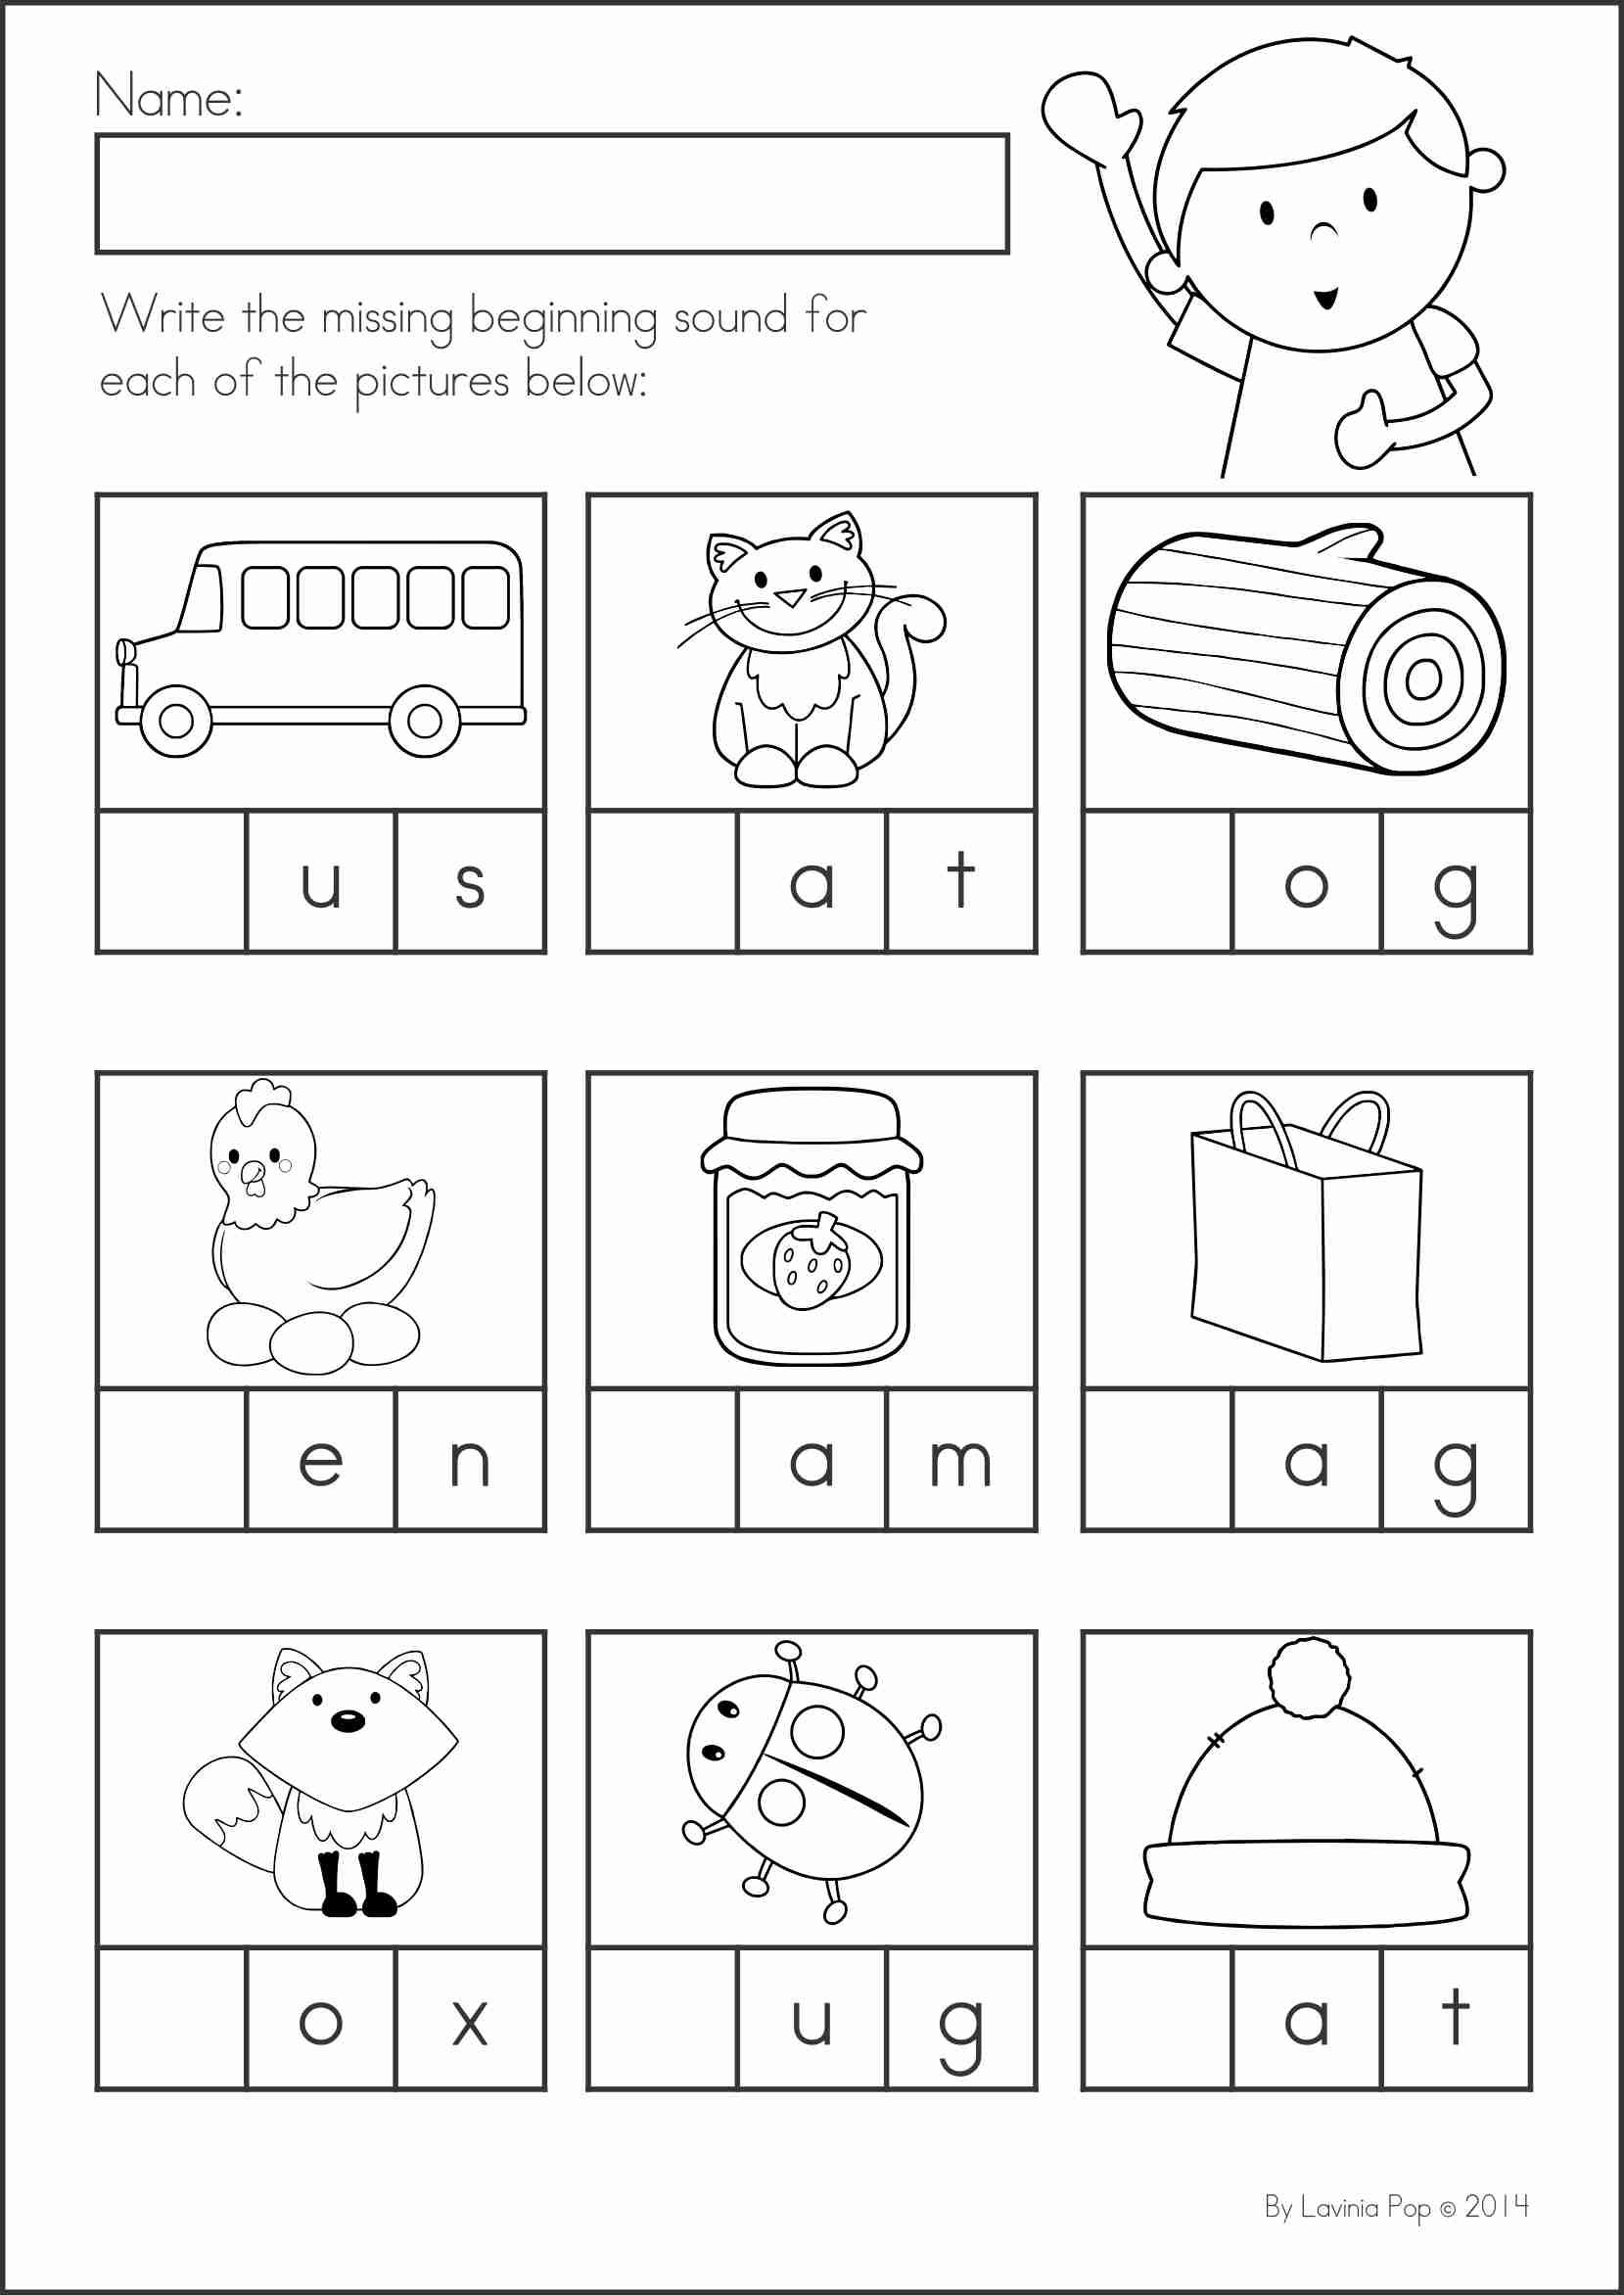 Free School Worksheets For Preschool : Back to school math literacy worksheets and activities